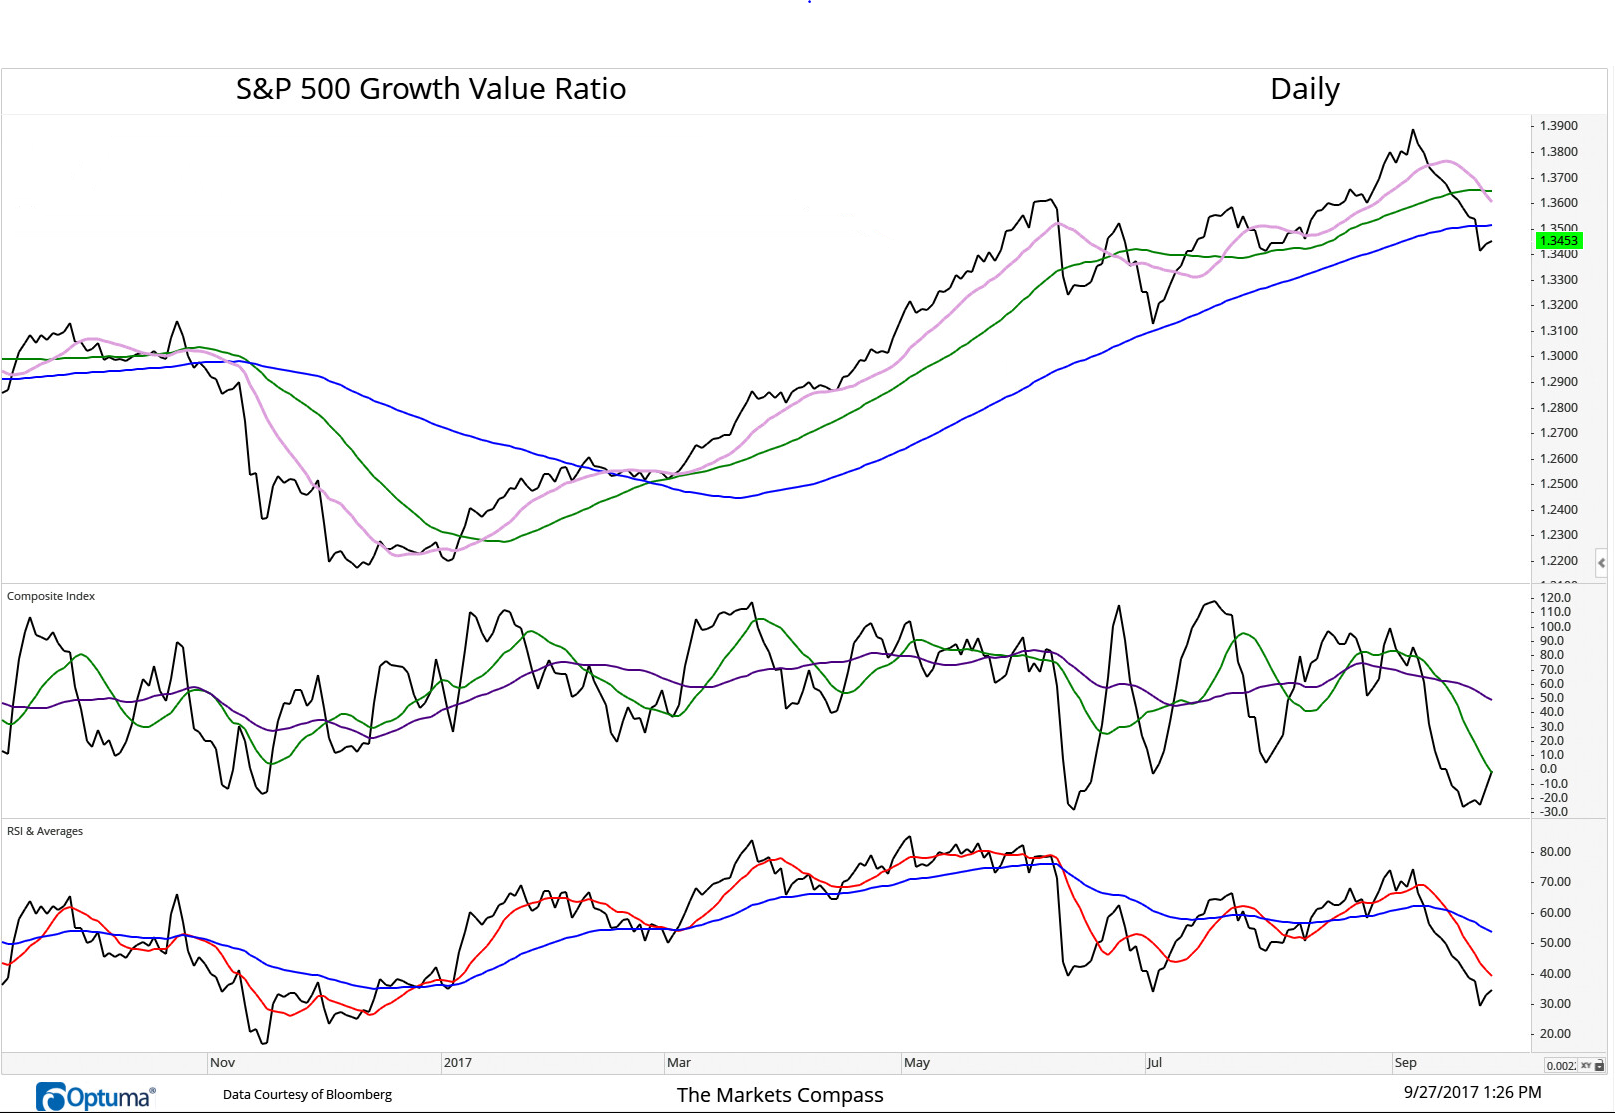 September 27, 2017. S&P 500 Growth/Value Ratio driven lower by the recent strength in financials and weaknes in tech.